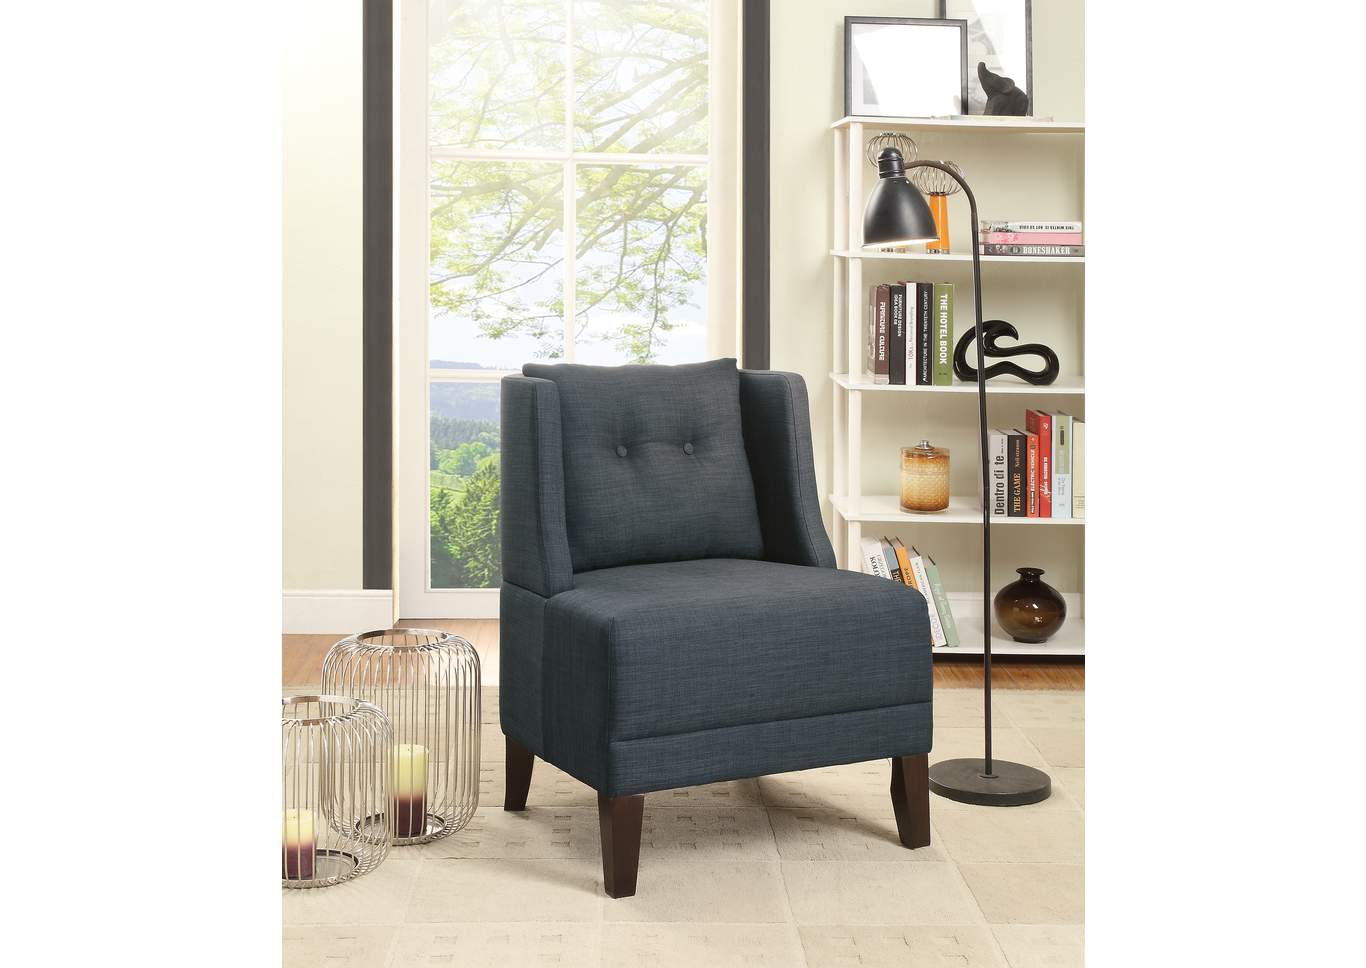 Super Quality Furniture Wa Dark Blue Accent Chair Caraccident5 Cool Chair Designs And Ideas Caraccident5Info